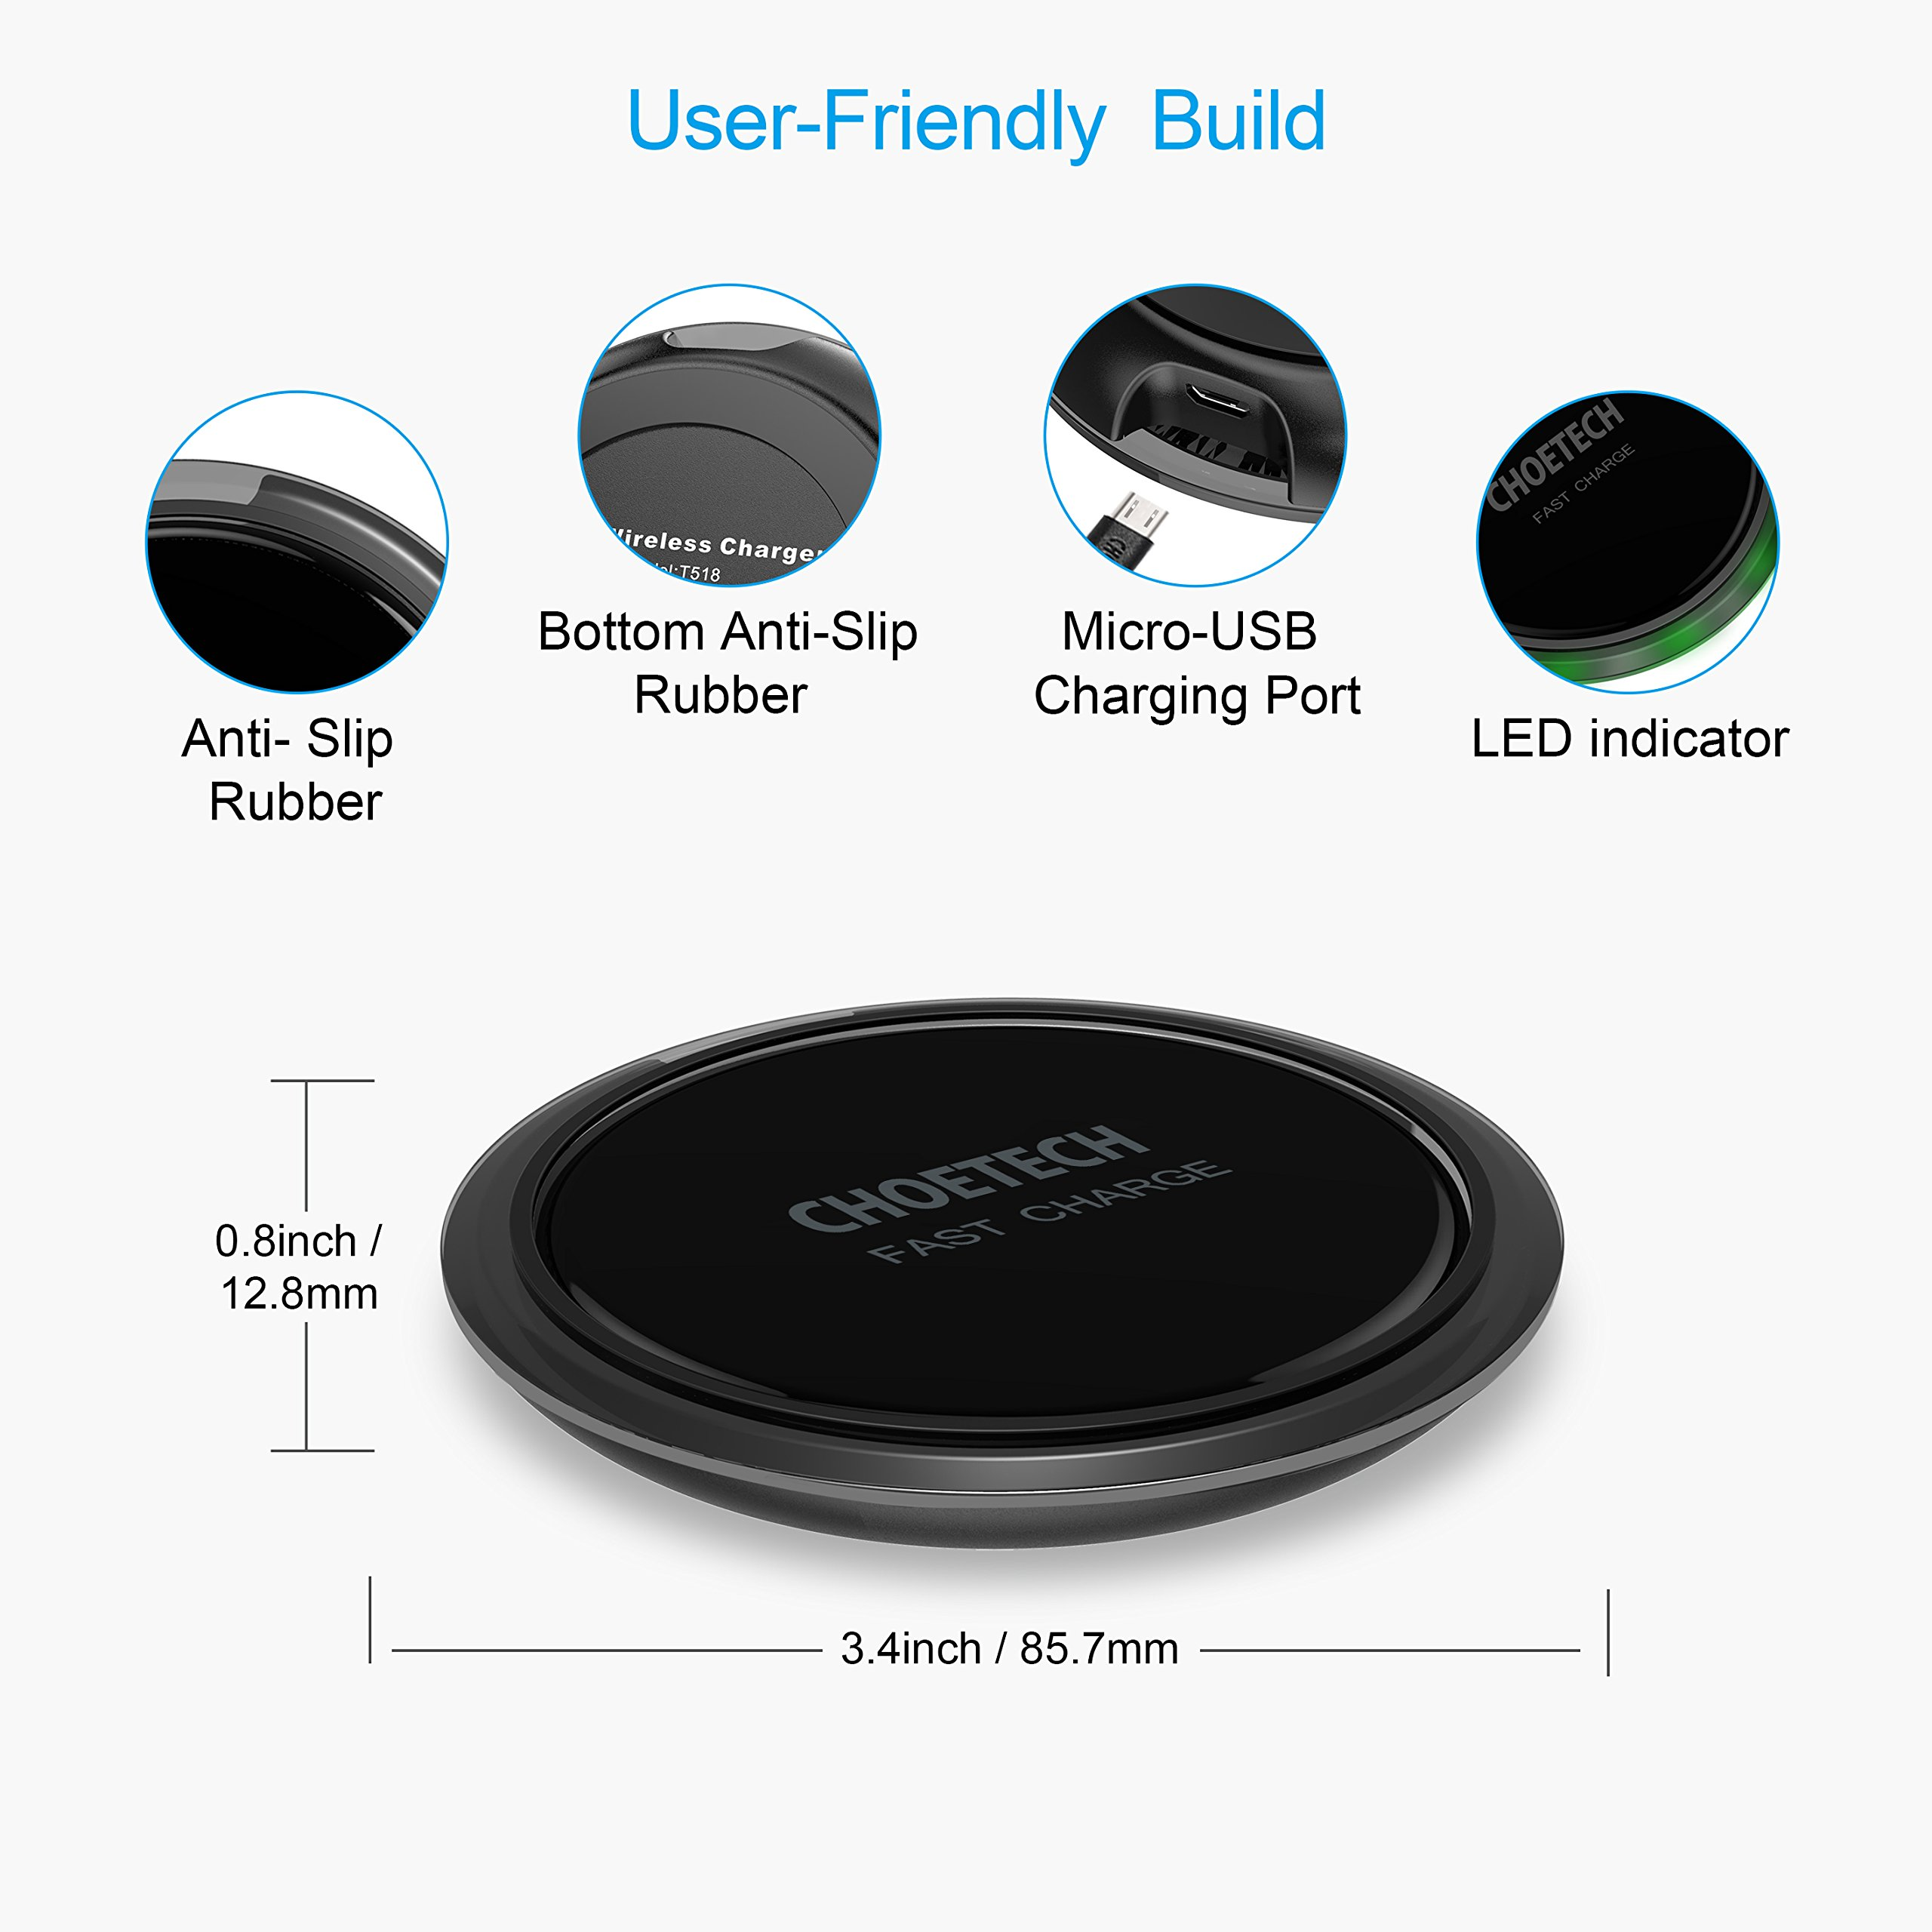 CHOETECH Wireless Charger, 7.5W Qi Fast Wireless Charger Pad Compatible iPhone X/8/8 Plus,10W Fast Charging Compatible Samsung Galaxy S9 S8 S9 Plus Note 8 (QC3.0 AC Adapter Included) by CHOETECH (Image #3)